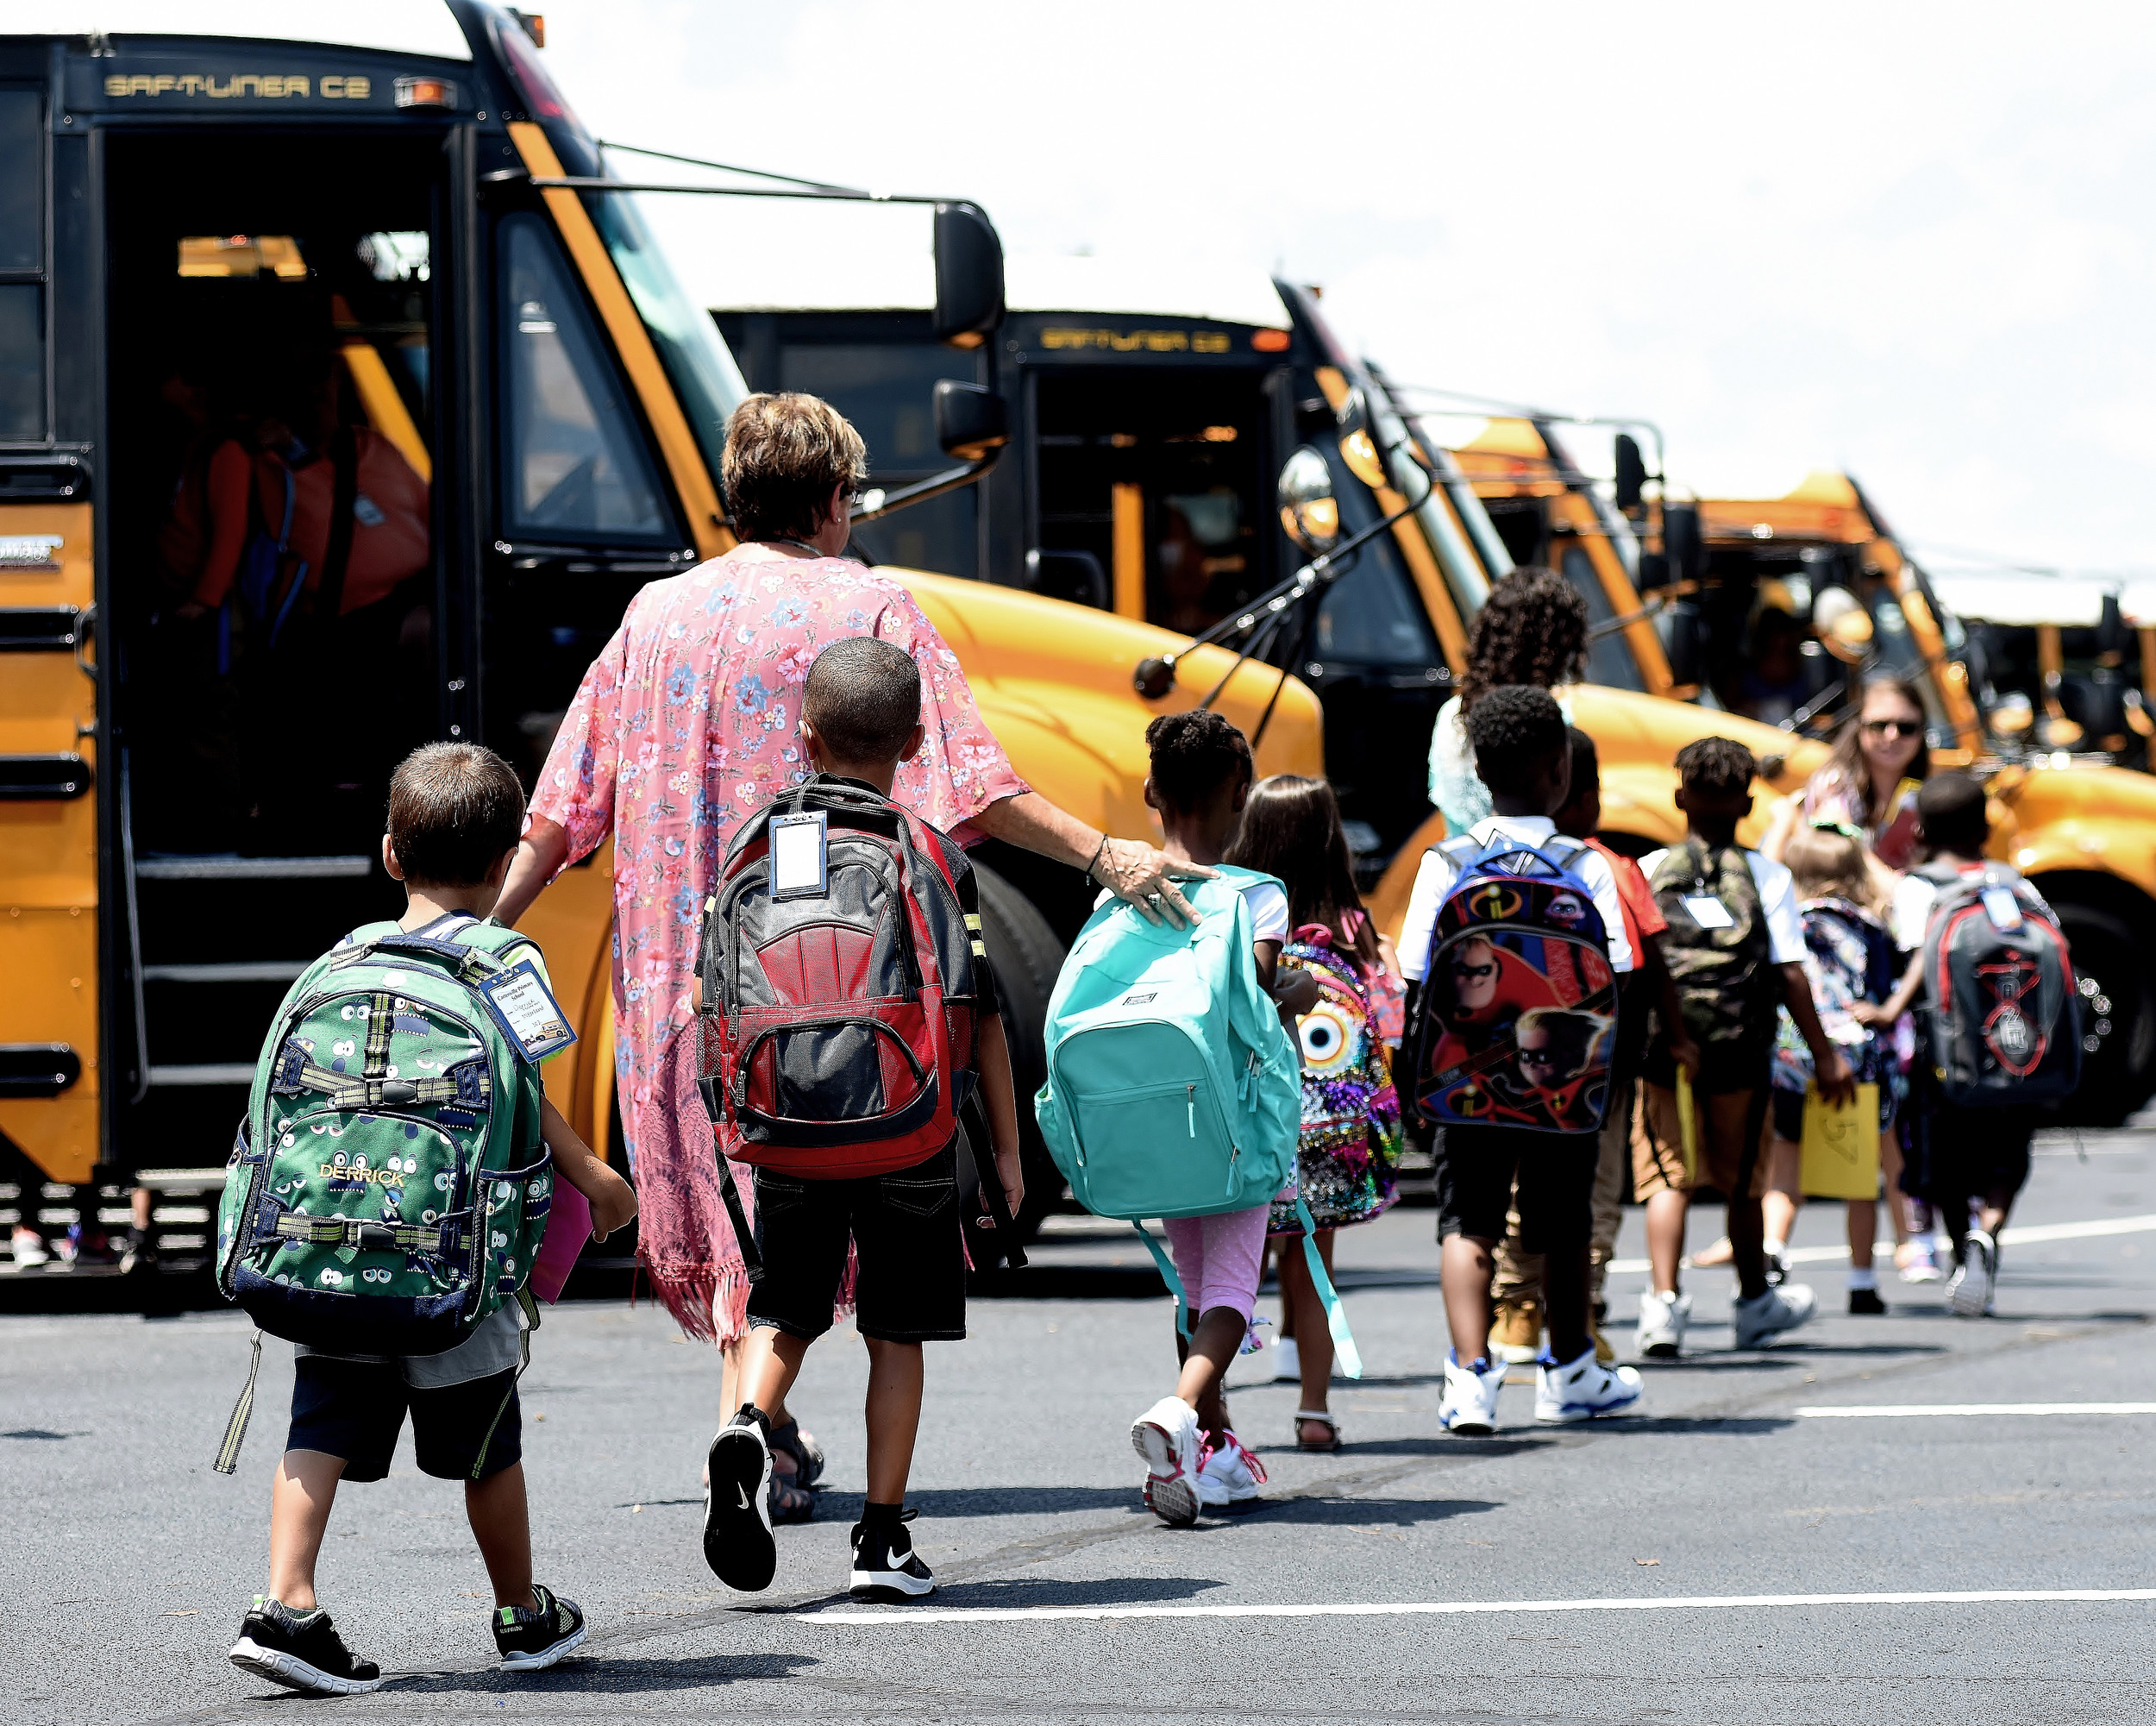 Students at Cartersville Primary School walk to their bus Wednesday after their first day of the 2018-2019 school year.